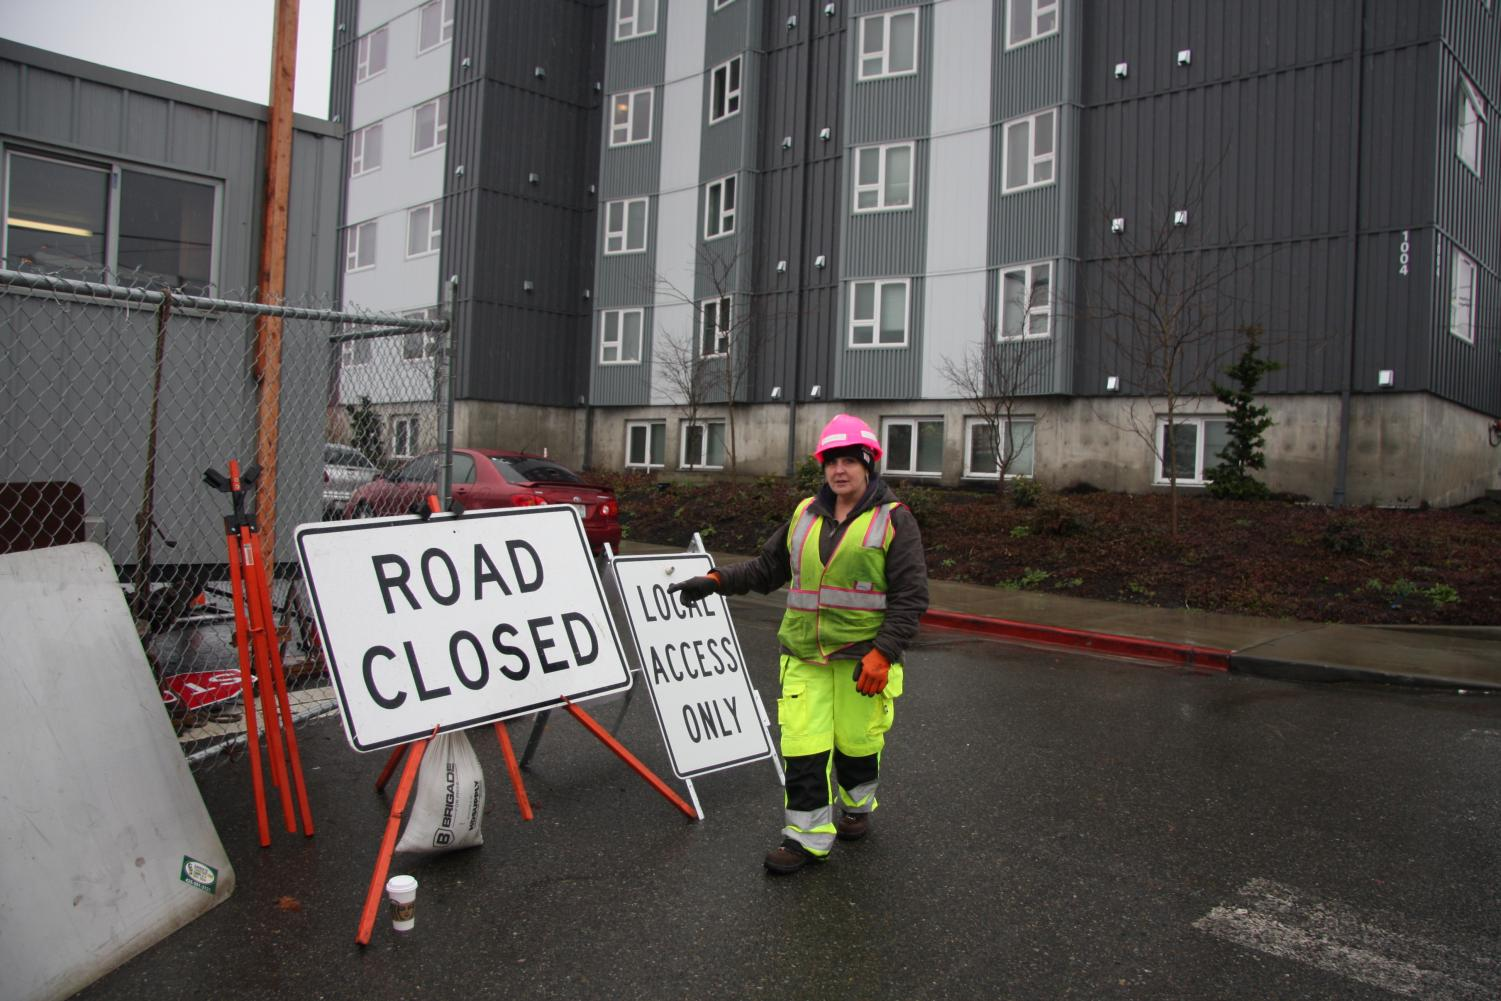 Construction worker, Carol Crane, describing the accident that occurred in front of the Mountain View dorms on Wednesday, Feb. 5.